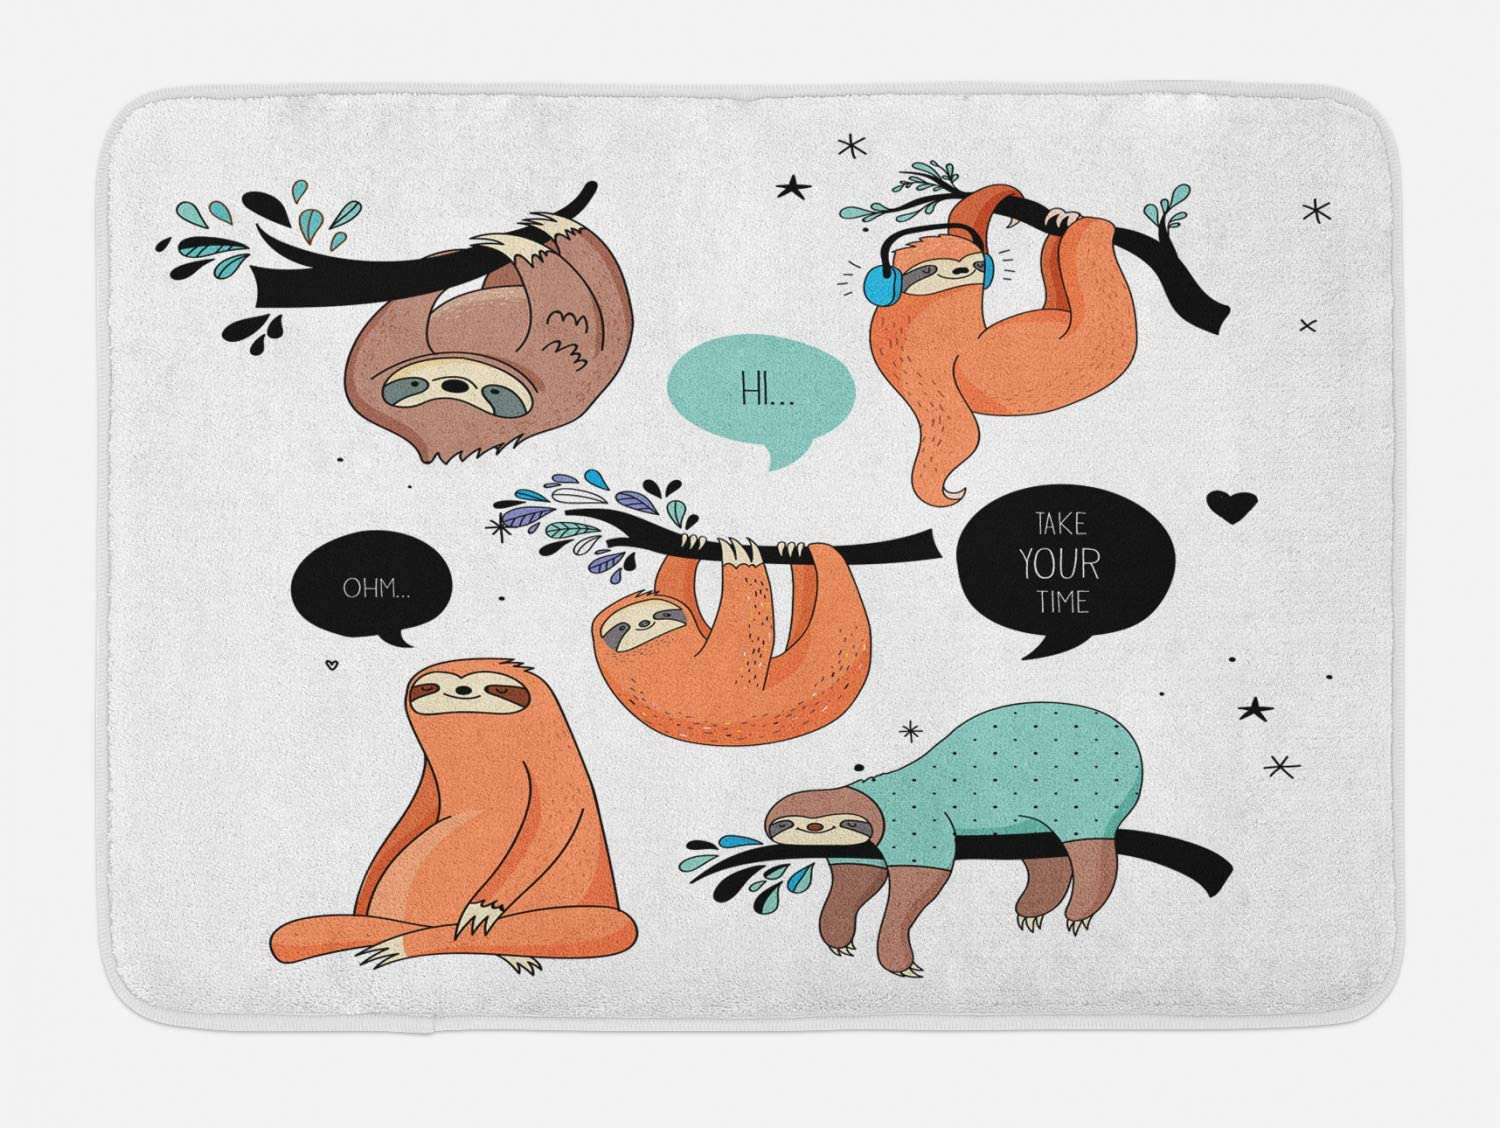 "Ambesonne Animal Bath Mat, Cartoon Style Illustration Tribe of Sloths Smiles Sleeping Lazy Does Yoga Words, Plush Bathroom Decor Mat with Non Slip Backing, 29.5"" X 17.5"", White Coral"